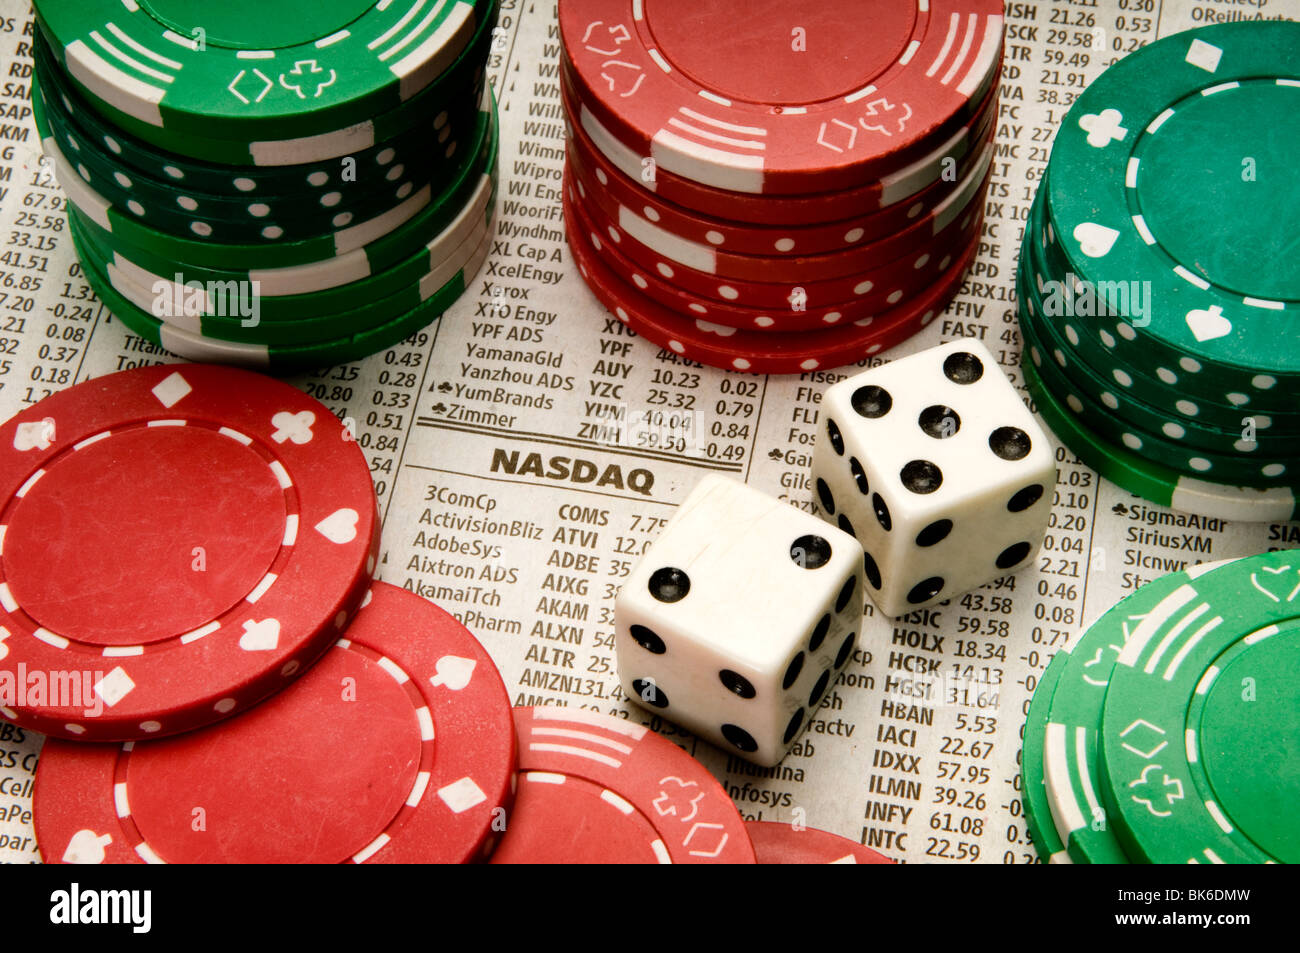 gambling - Stock Image